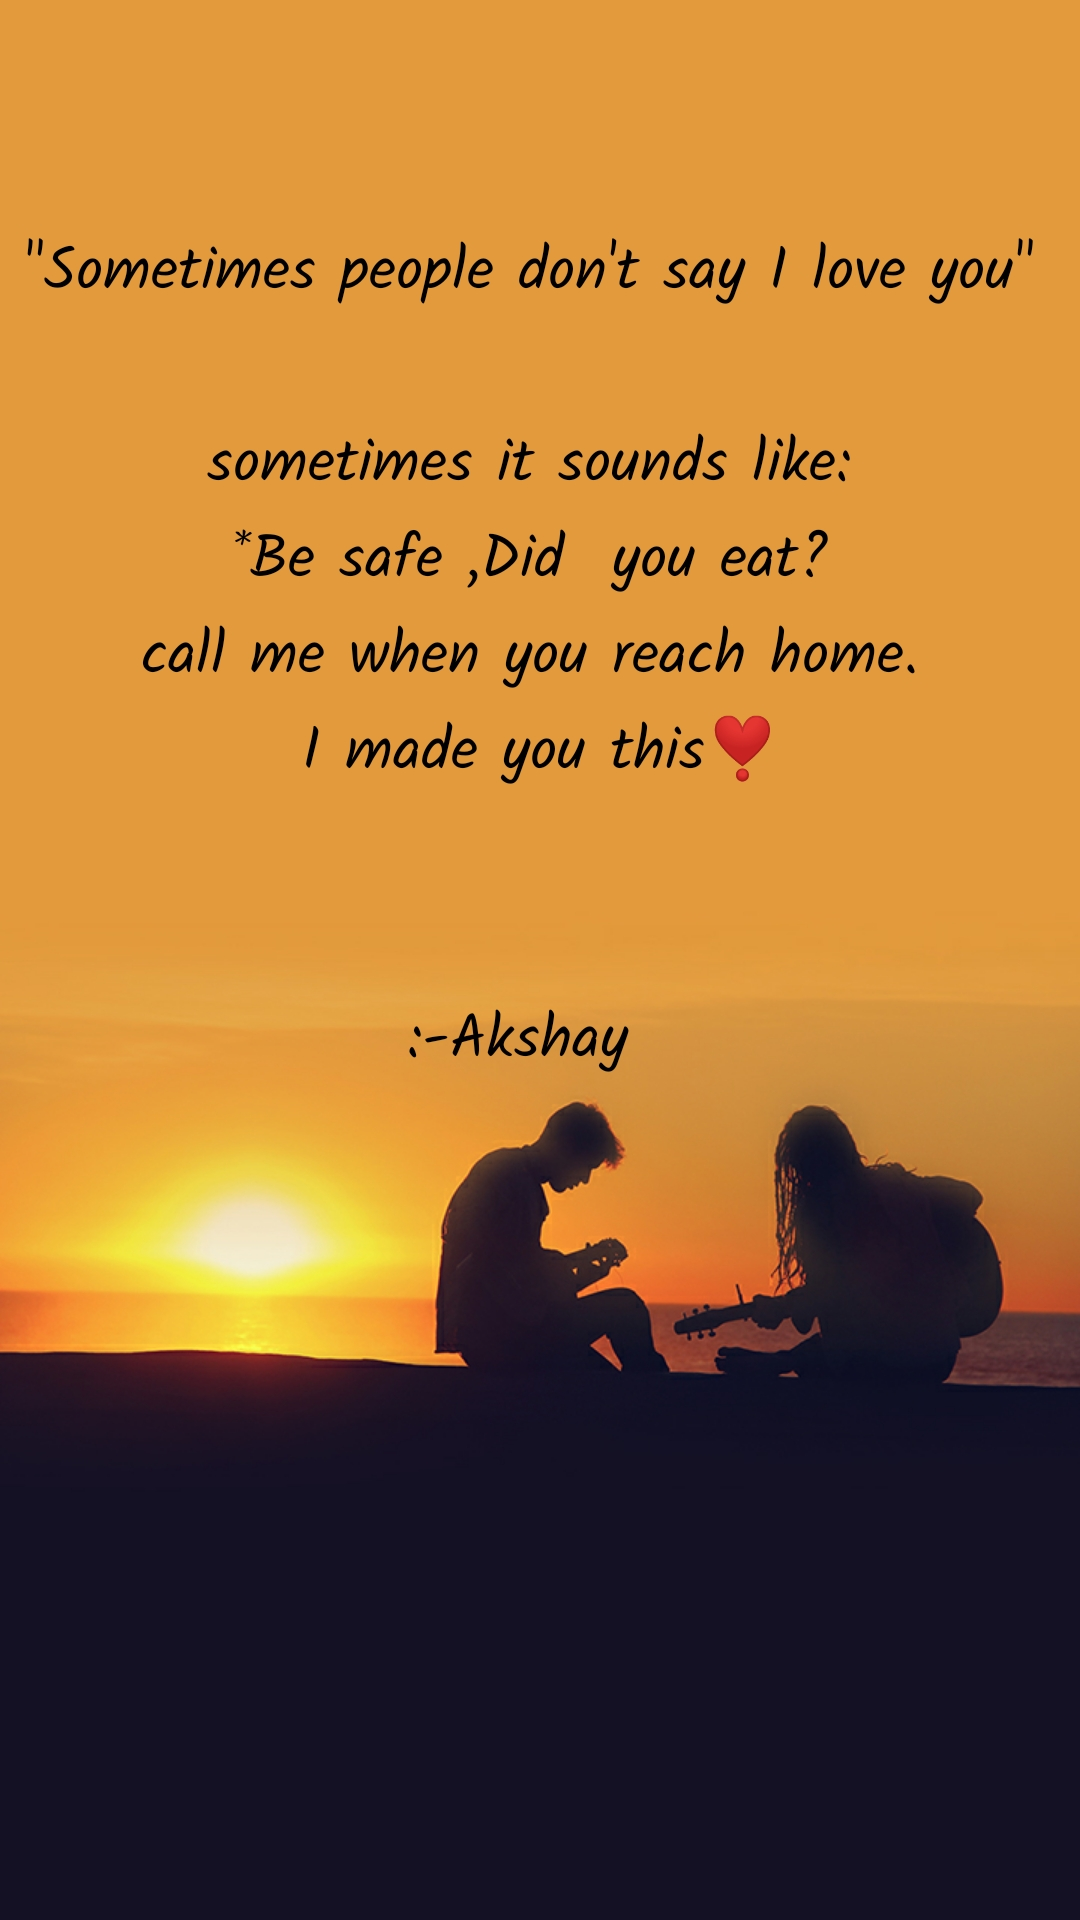 """Sometimes people don't say I love you""  sometimes it sounds like: *Be safe ,Did  you eat? call me when you reach home.  I made you this❣️   :-Akshay"